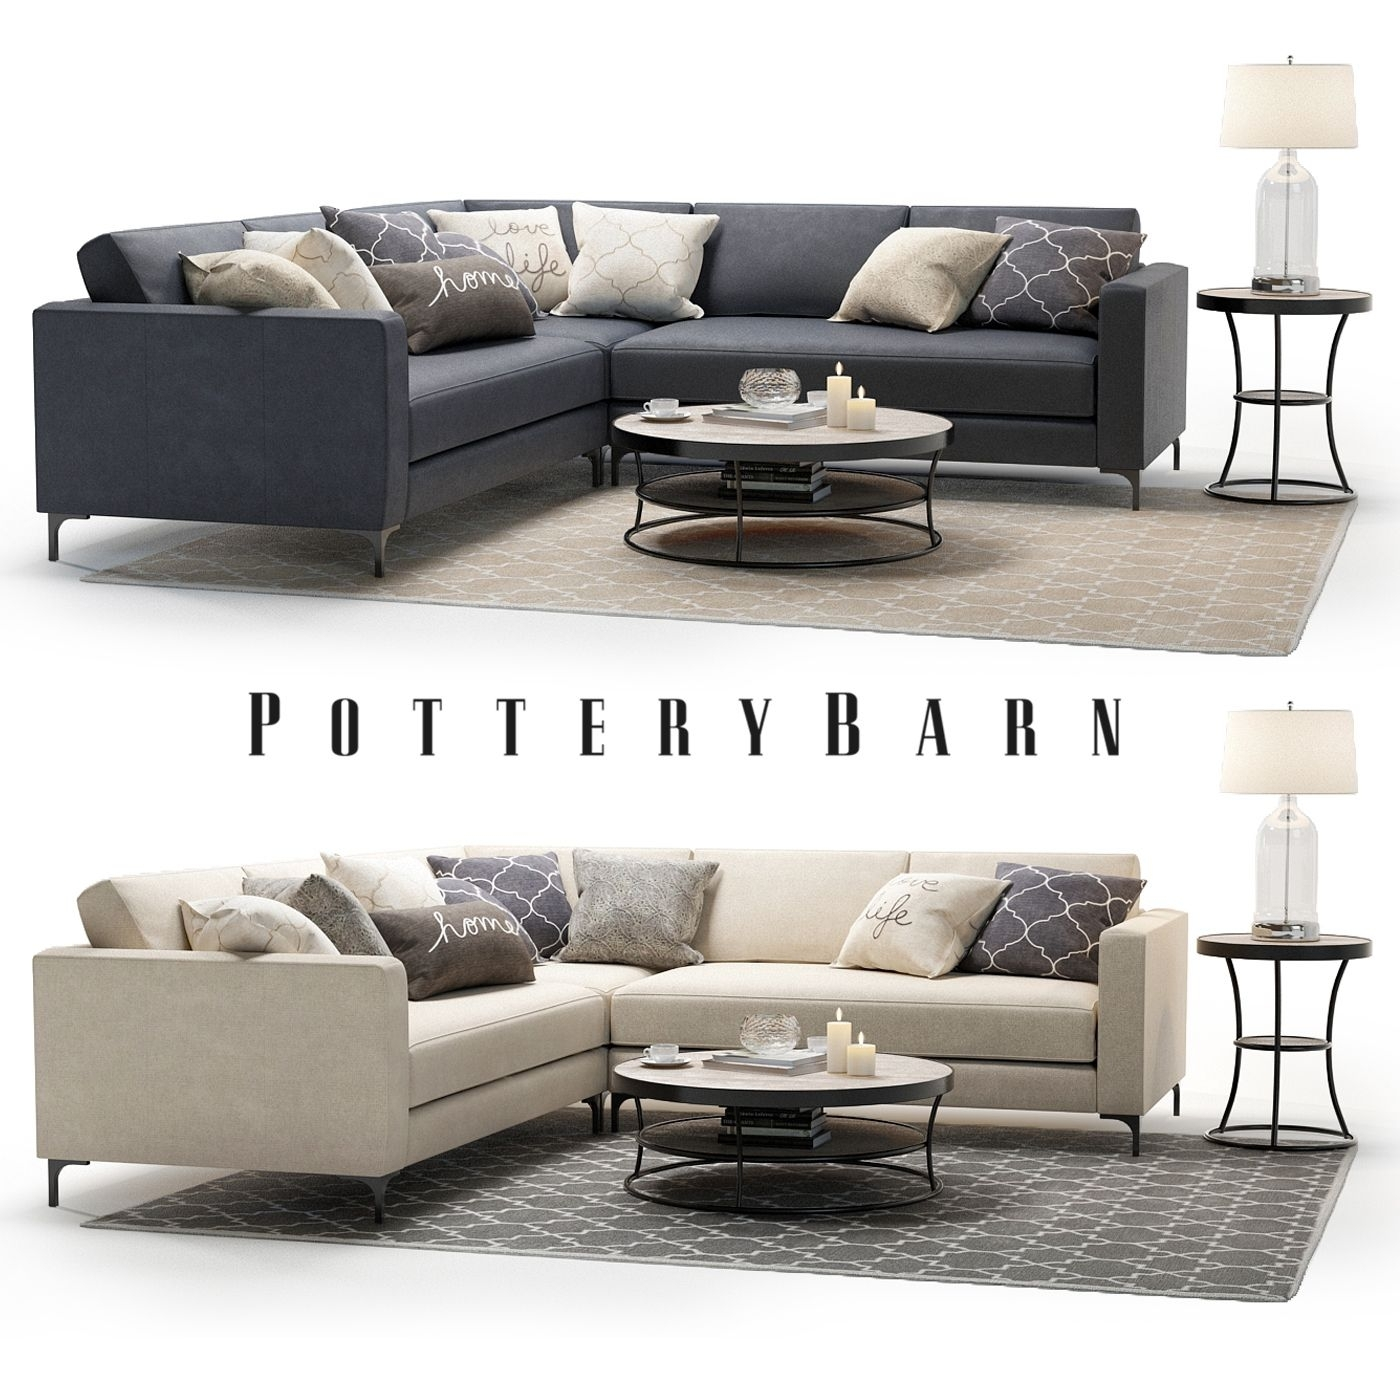 3D Model – Pottery Barn – Jake Sectional Sofa With Bartlett With Pottery Barn Sectional Sofas (Photo 5 of 10)